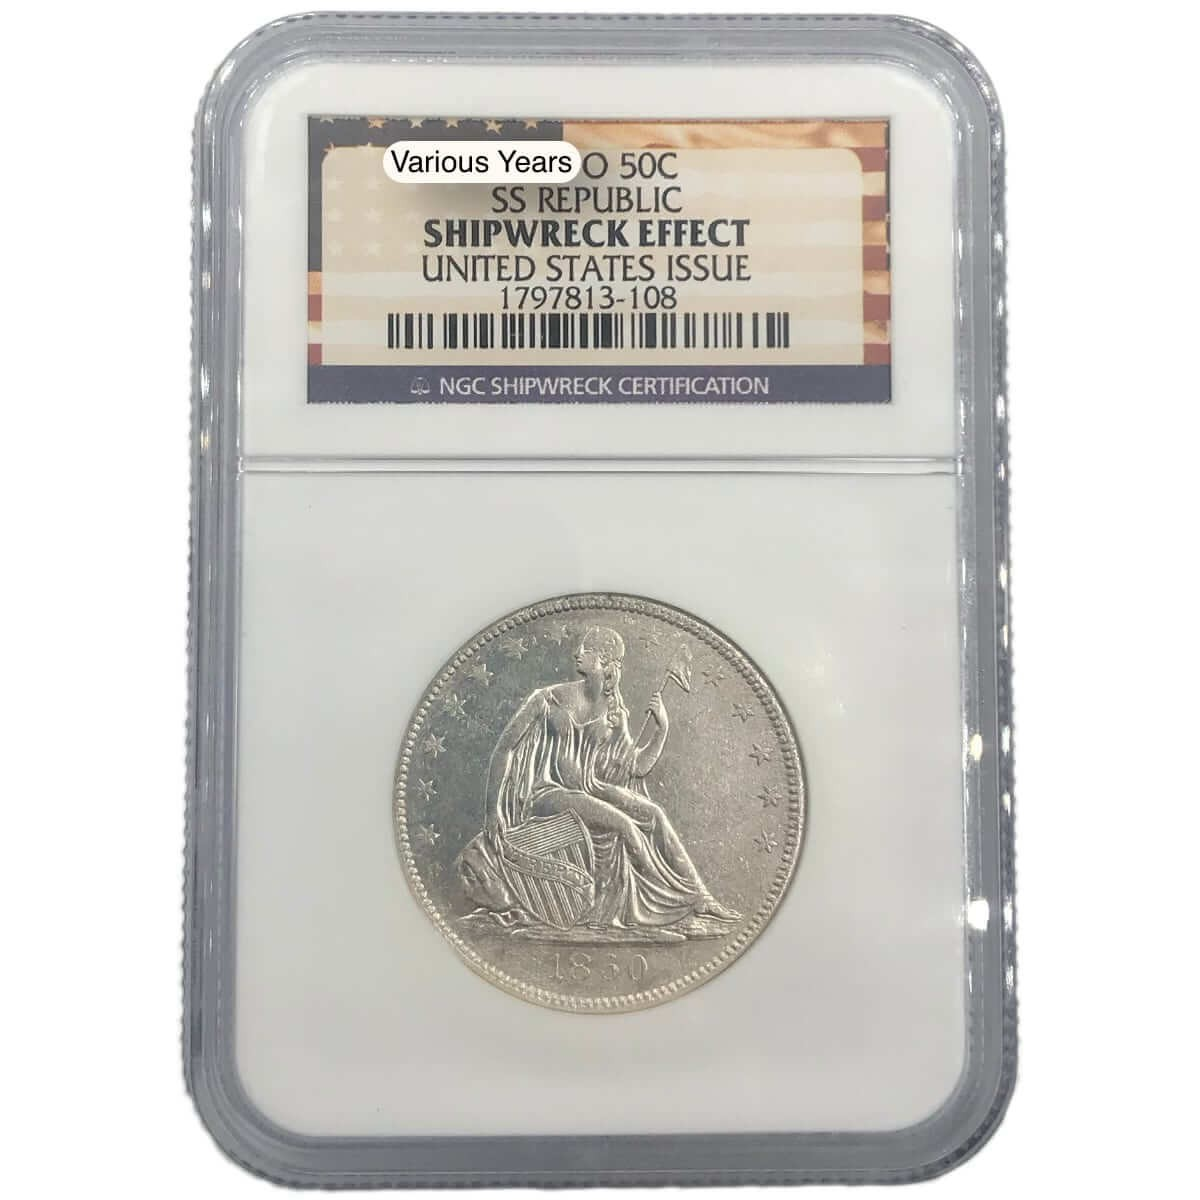 SS Republic Shipwreck Half Dollar